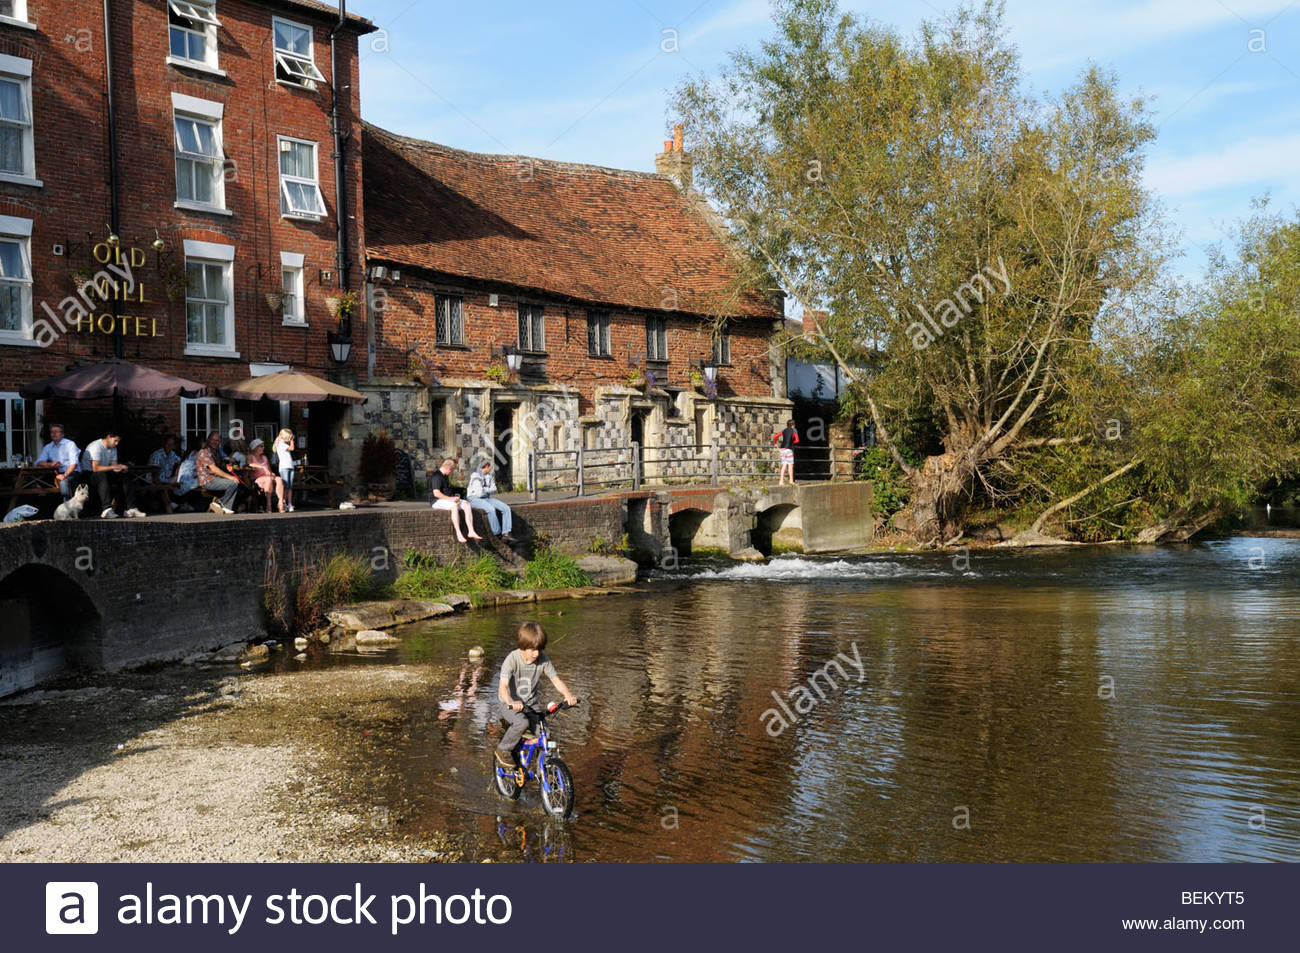 Sunny day view of the Old Mill Hotel, Salisbury, Wiltshire, England, UK Stock Photo